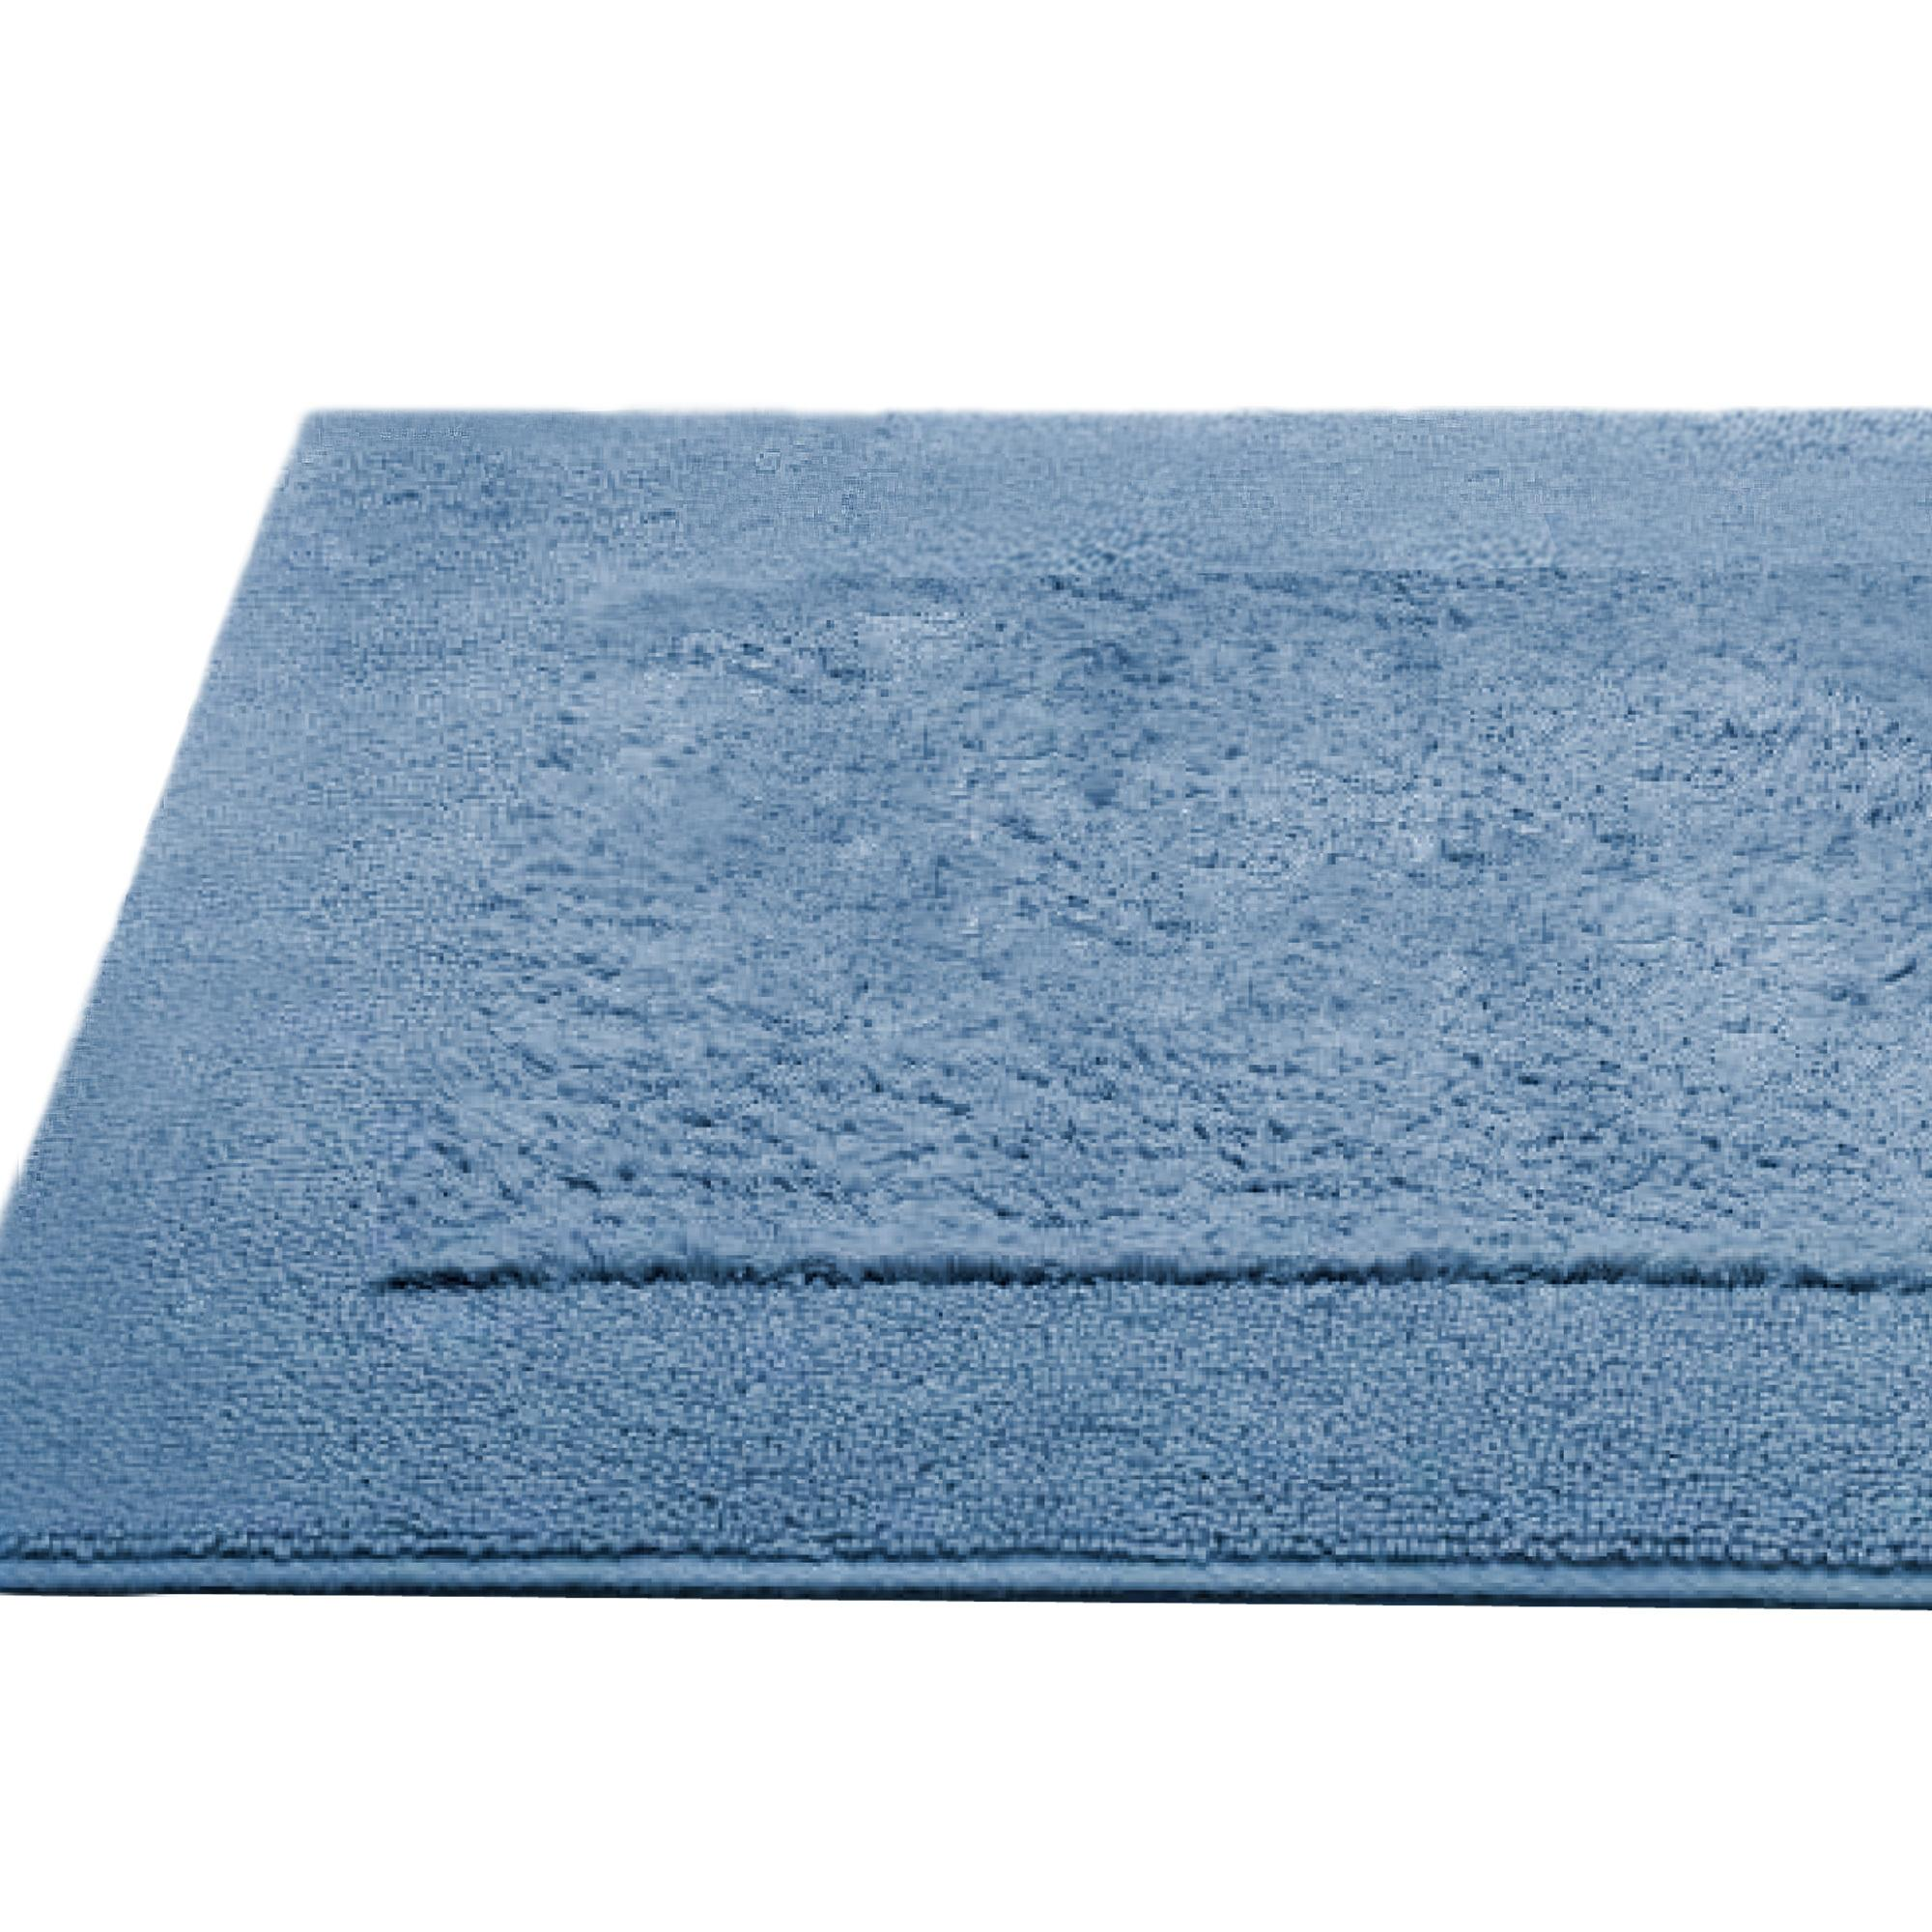 tapis de bain 60x90cm coton uni dream bleu gris linnea vente de linge de maison. Black Bedroom Furniture Sets. Home Design Ideas